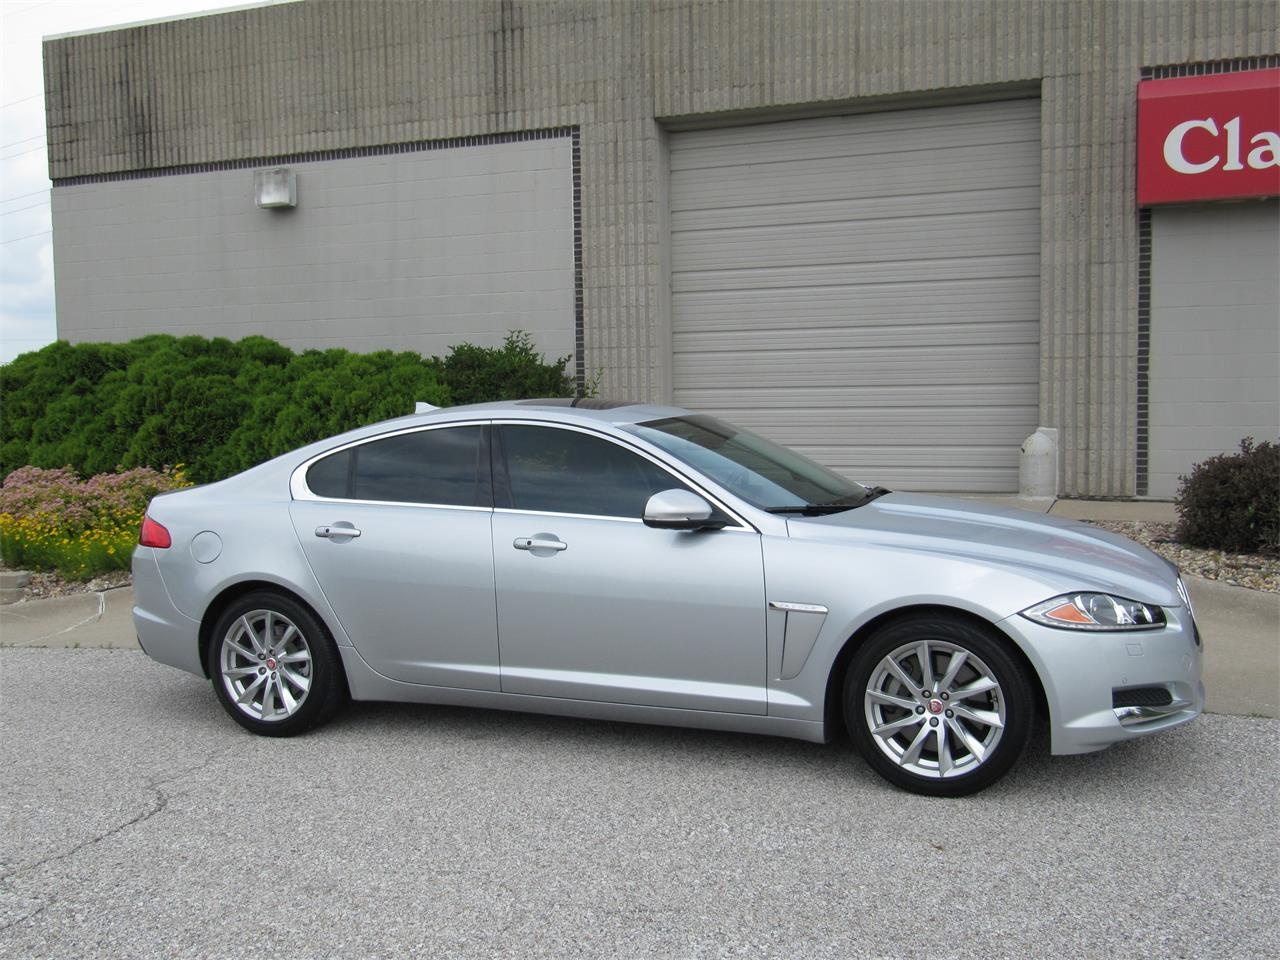 Large Picture of '15 XF - $23,900.00 Offered by Classic Auto Sales - QD33